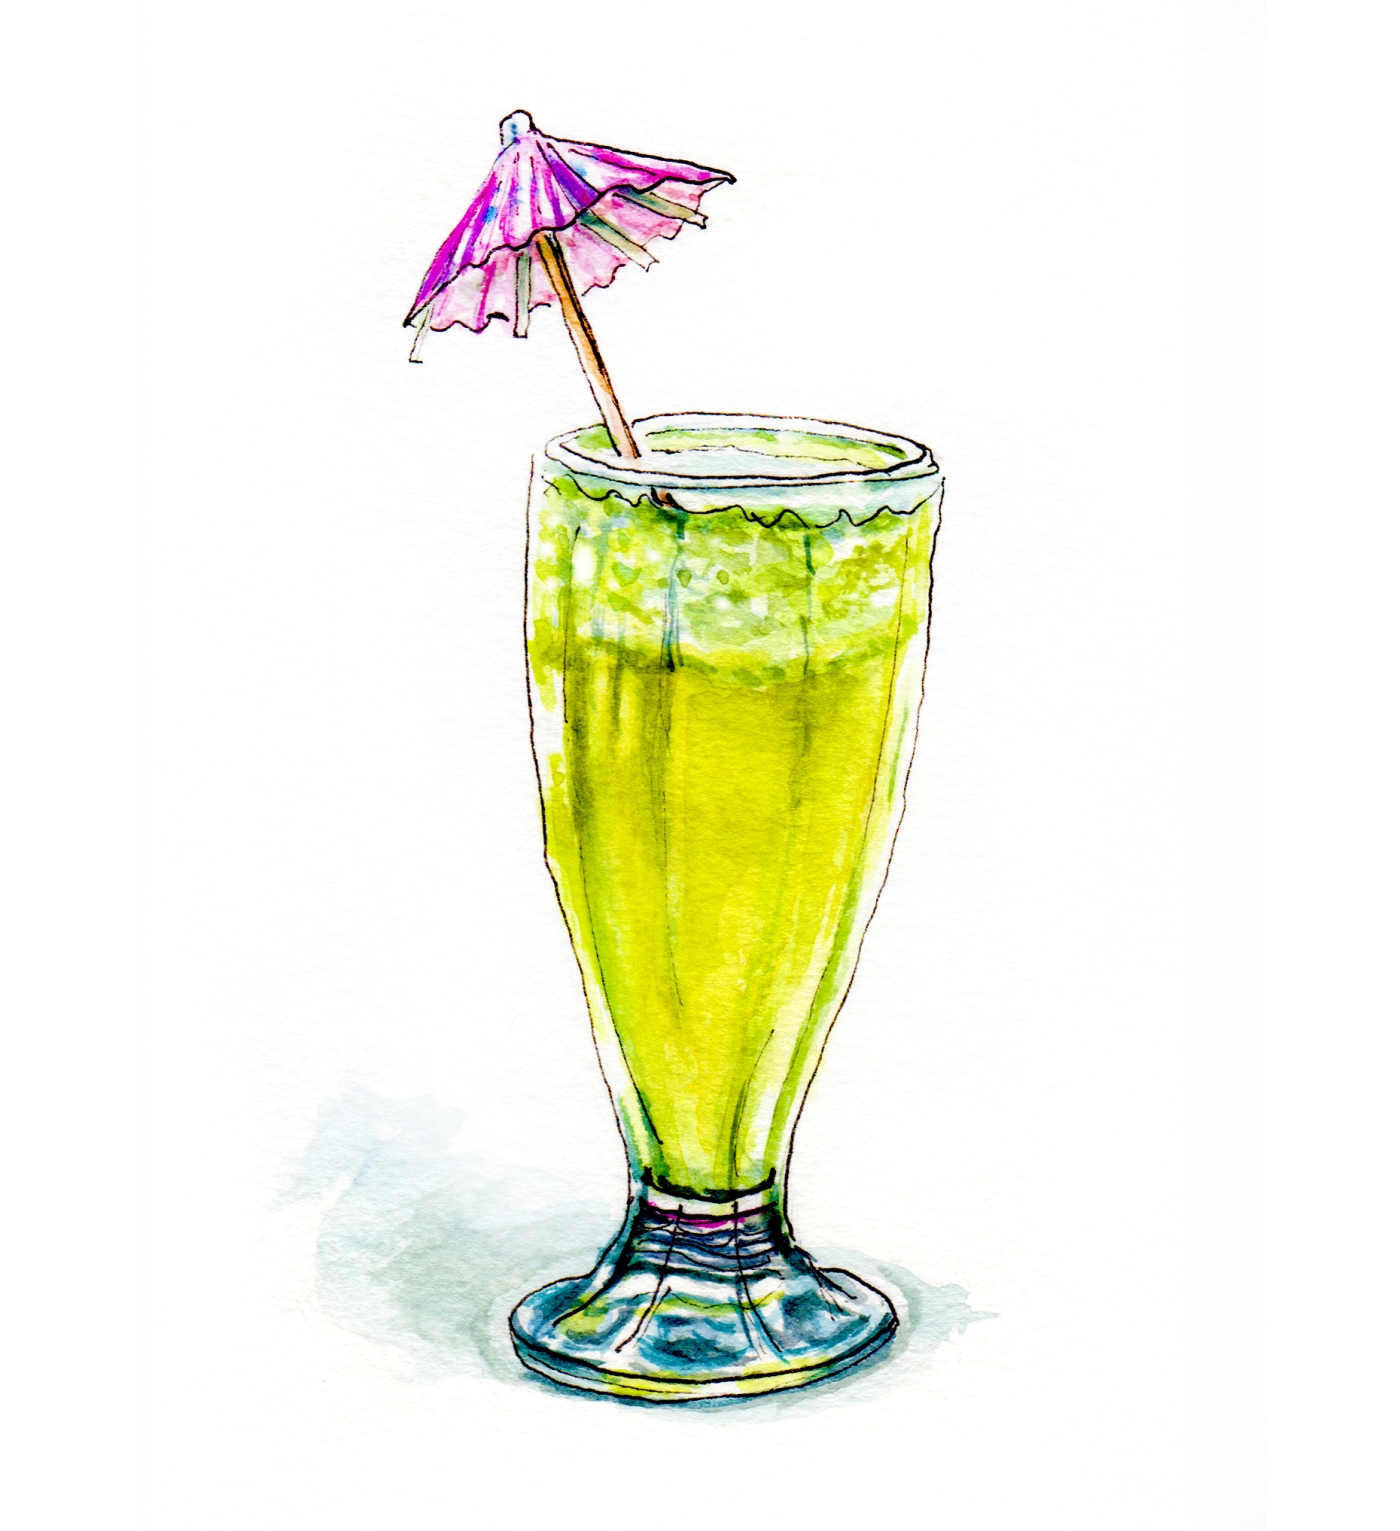 Day 3 - #WorldWatercolorGroup - Dreaming of the Sun - Tropical Frozen Drink with Umbrella - #doodlewash